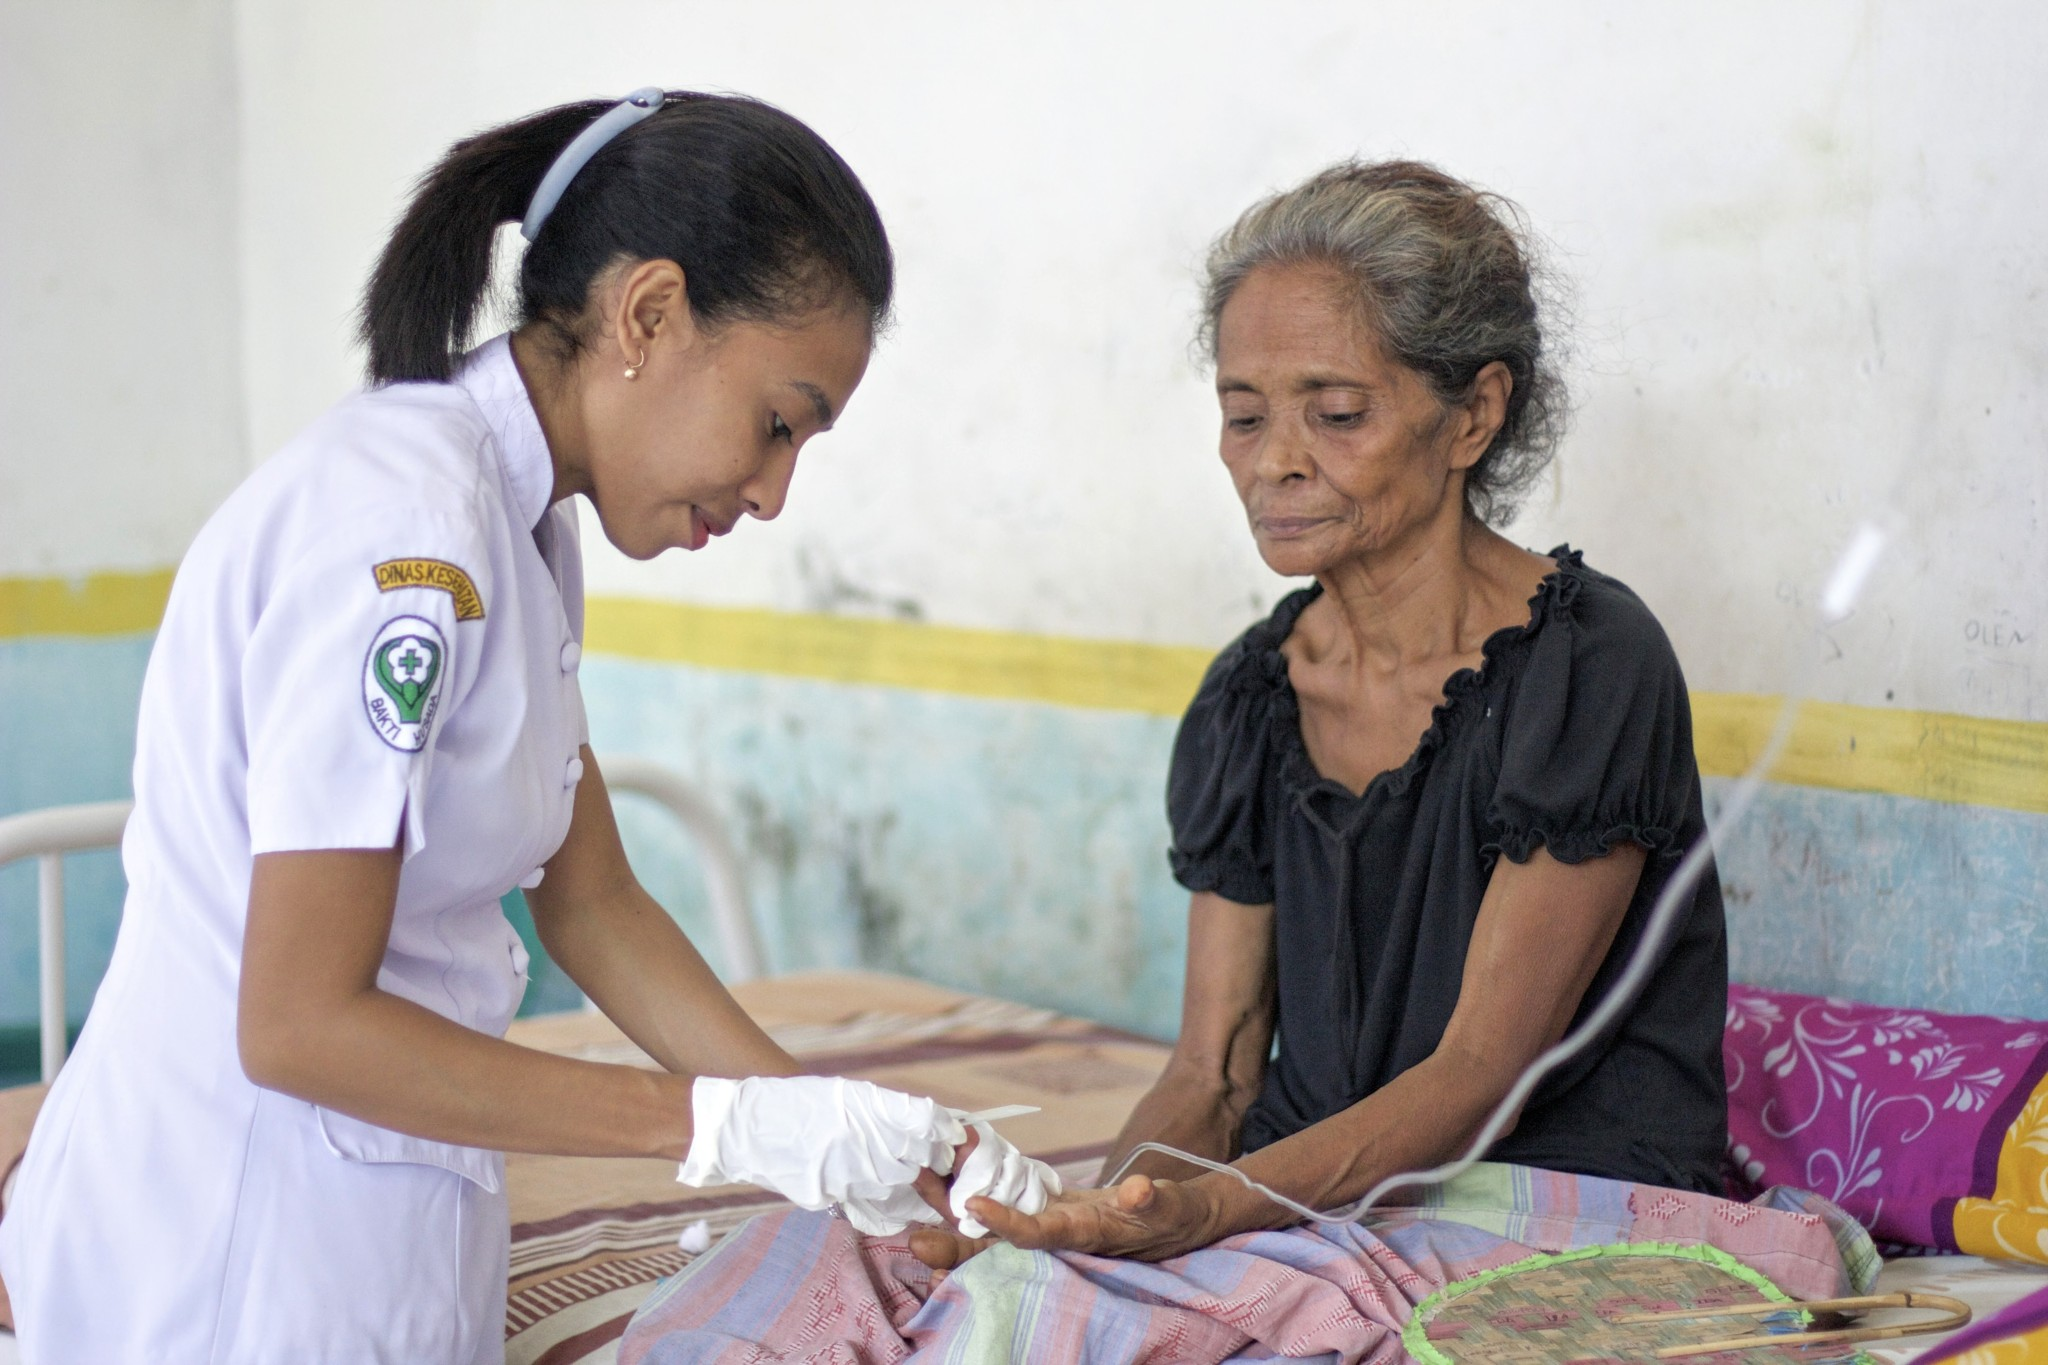 "56-year-old Fransura Kavori recovers from an attack of Plasmodium falciparum malaria at the Mebung Primary Health Centre at remote Alor Island in eastern Indonesia. Her nurse, Dian Adiana of the Ministry of Health, takes a follow up blood sample to check on the progress of her therapy against the infection. Ms. Kavori happens to be the malaria volunteer worker and traditional healer of her home village. Traditional healing is a very important element of healthcare in Indonesia, with many dozens of defined herbal remedies for common ailments collectively referred to as ""jamu"". Traditional healers, however, acknowledge and understand their limits, as Ms. Kavori's presence at hospital demonstrates. Malaria is well known to be out of the healing reach of traditional jamu."